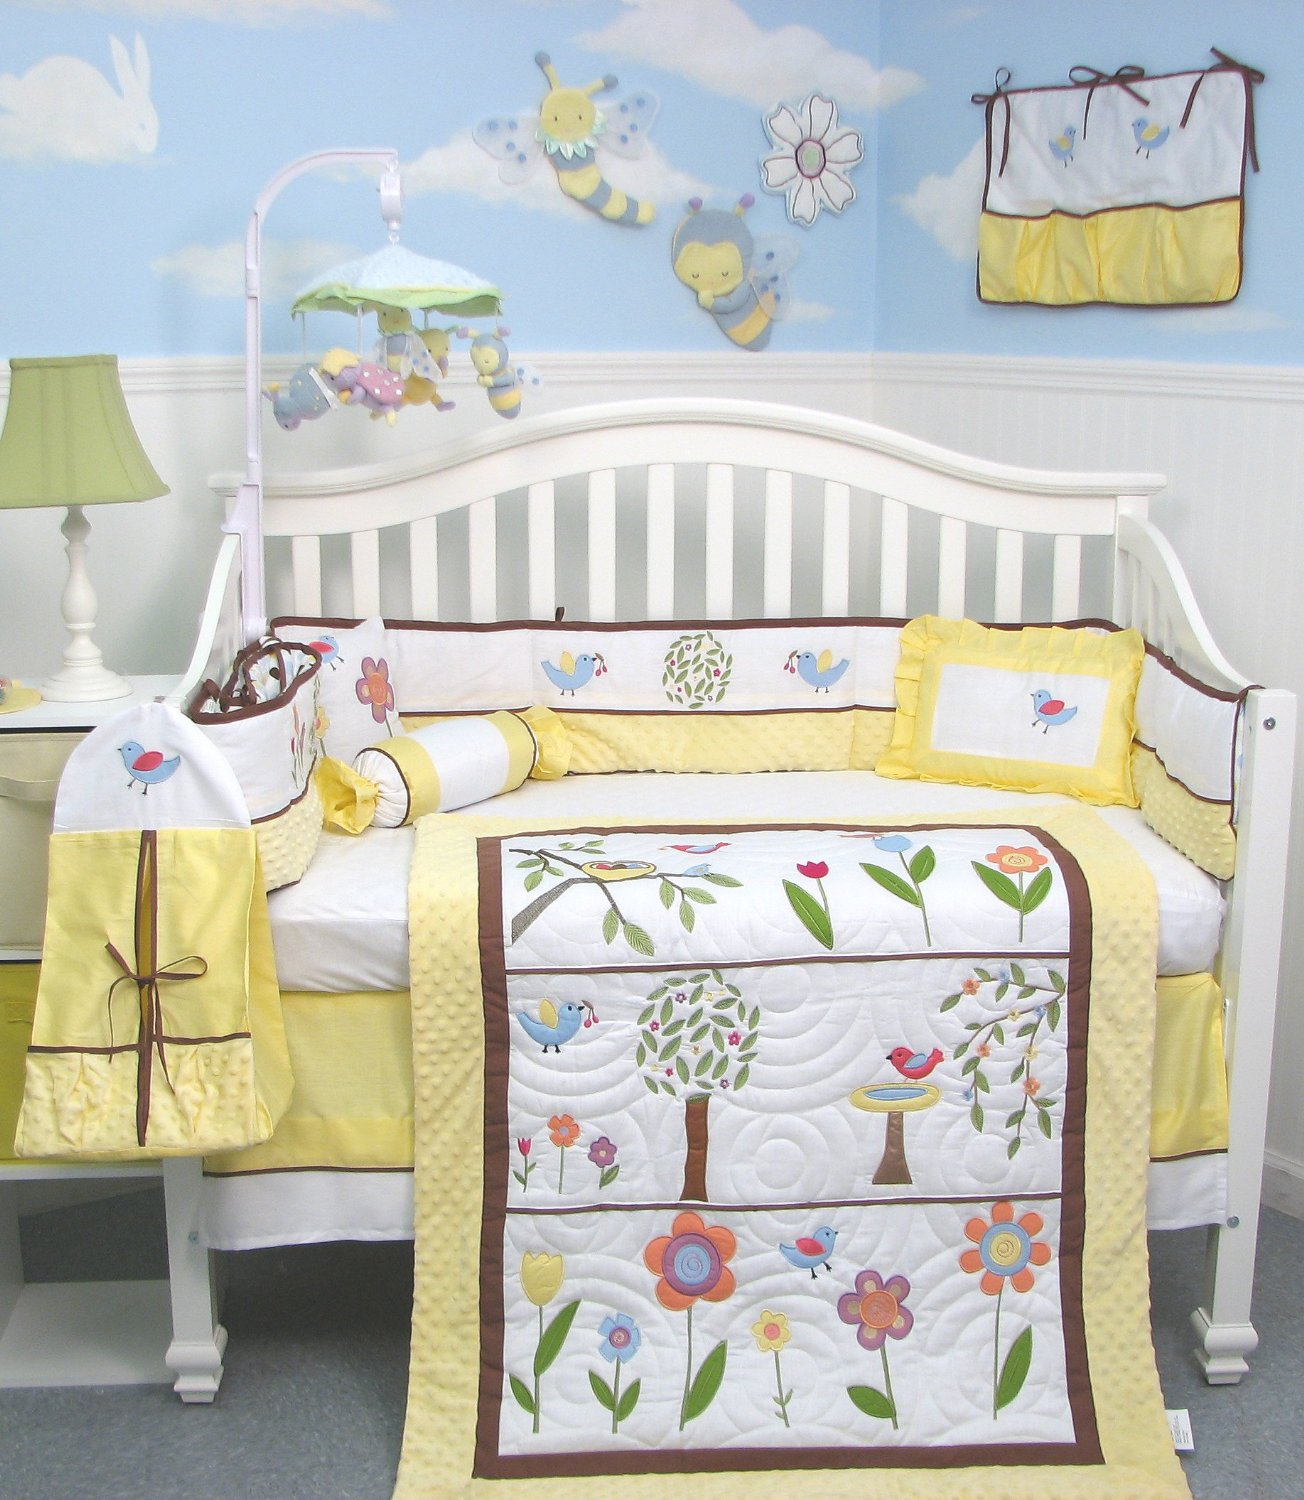 Soho Summer Bird Singing Baby Bedding Yellow